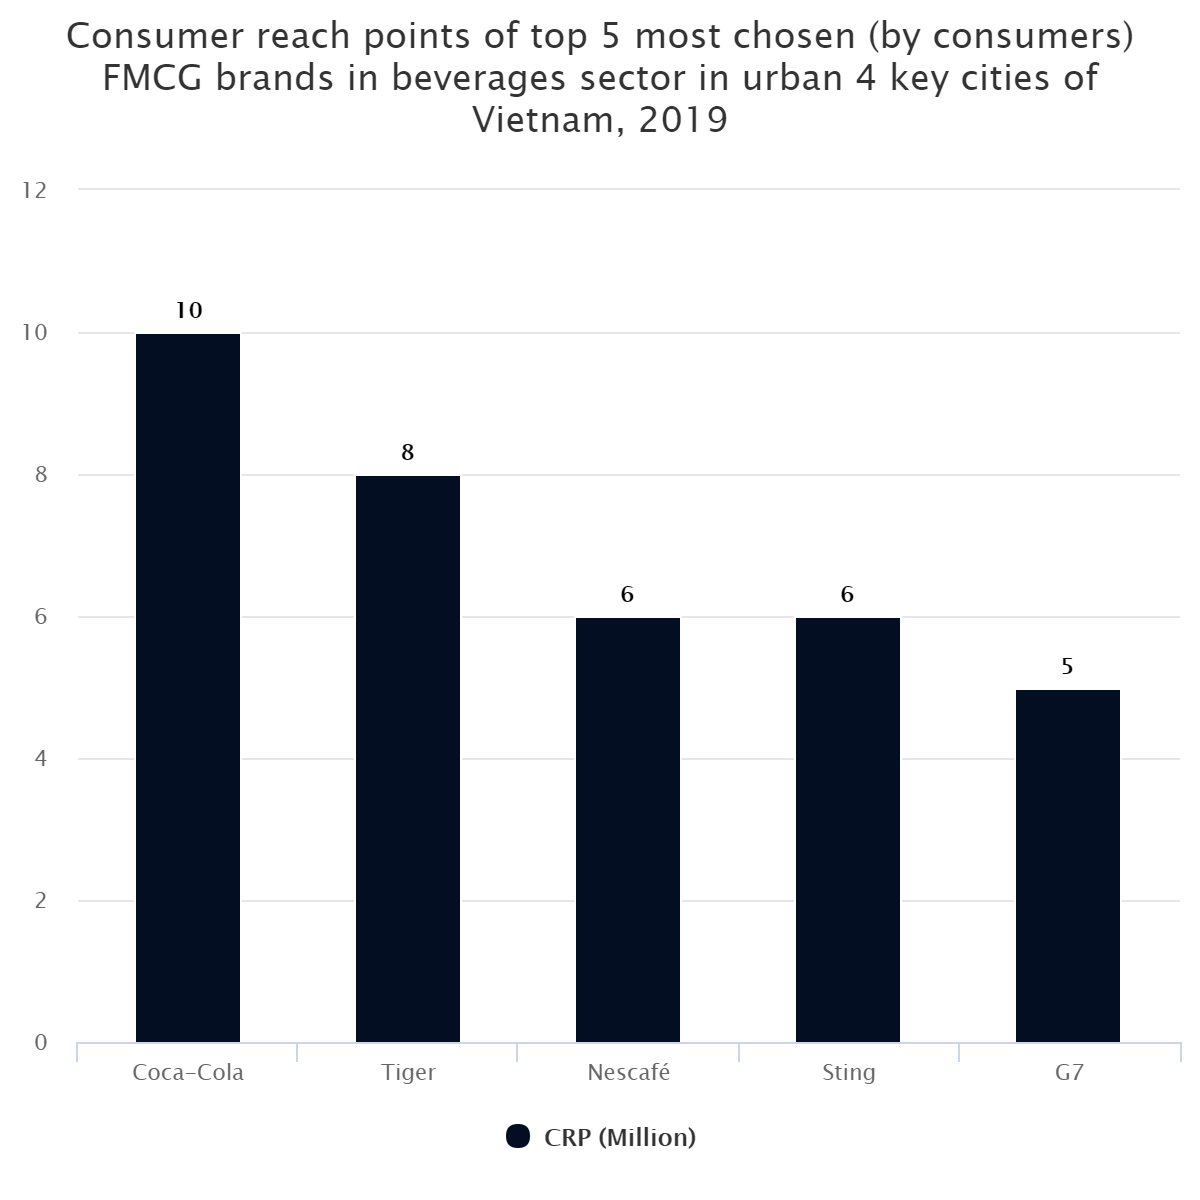 Consumer reach points of top 5 most chosen (by consumers) FMCG brands in beverages sector in urban 4 key cities of Vietnam, 2019